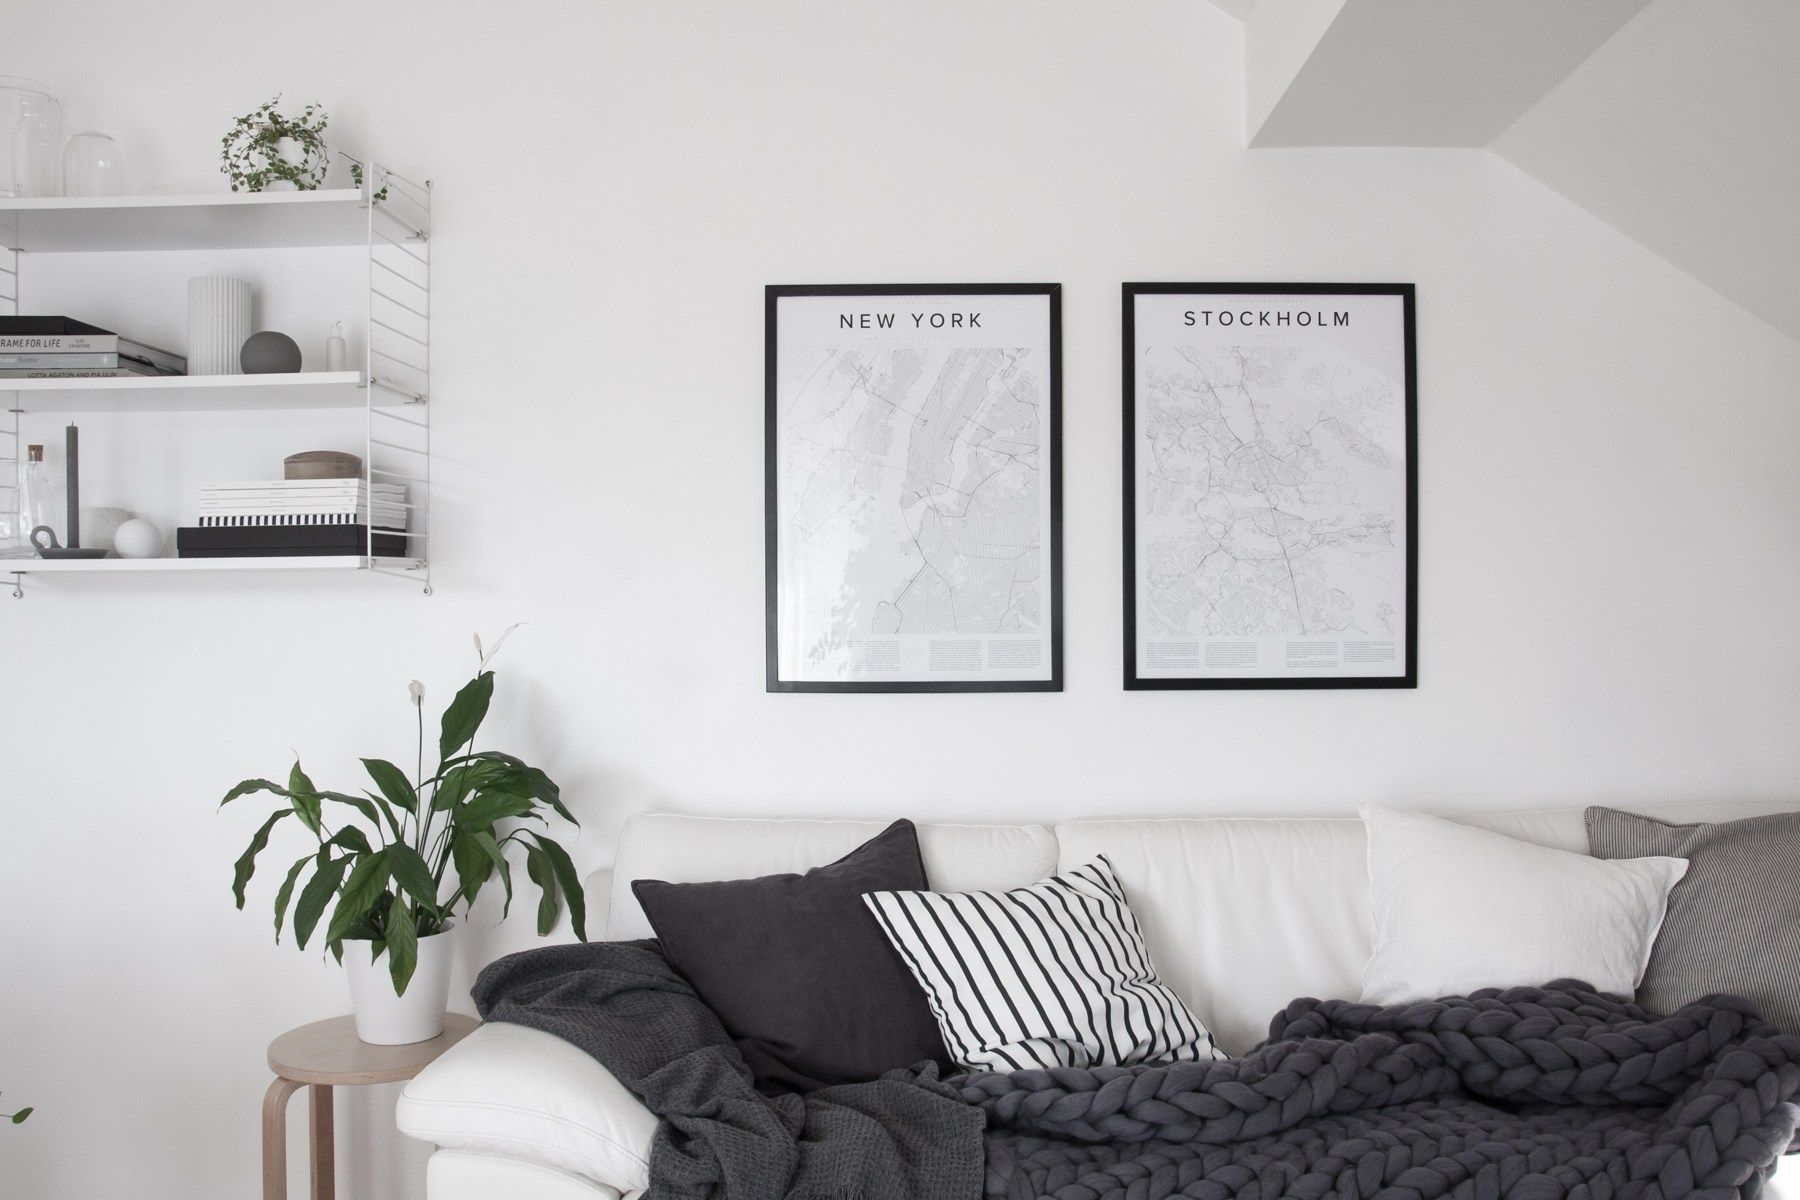 Scandinavian living room with white walls and map wall art - Top 10 tips for adding Scandinavian style to your home | Happy Grey Lucky